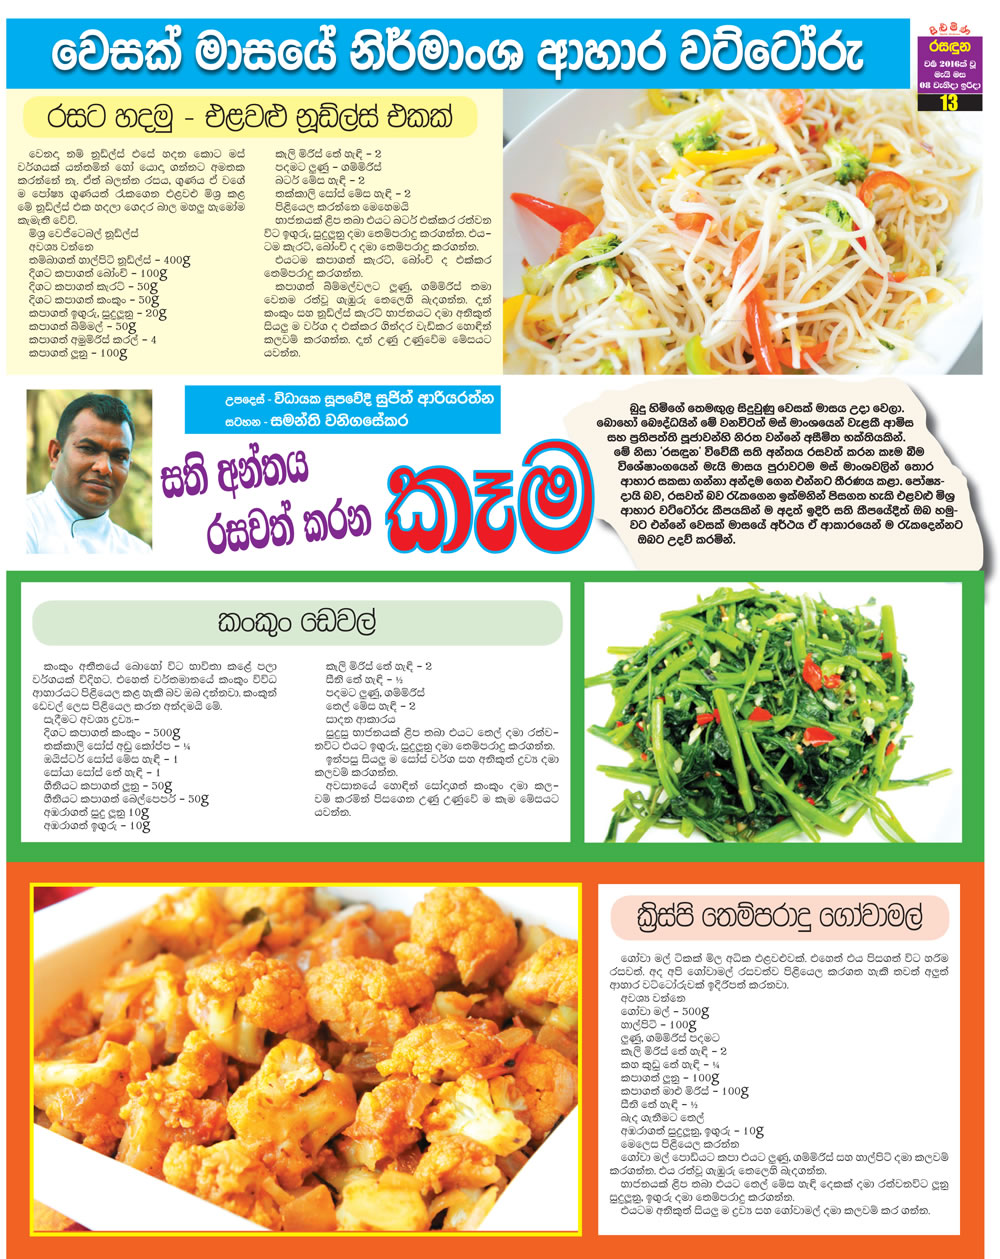 Vegetarian food recipes in sinhala lanka online paper vegetarian food recipes forumfinder